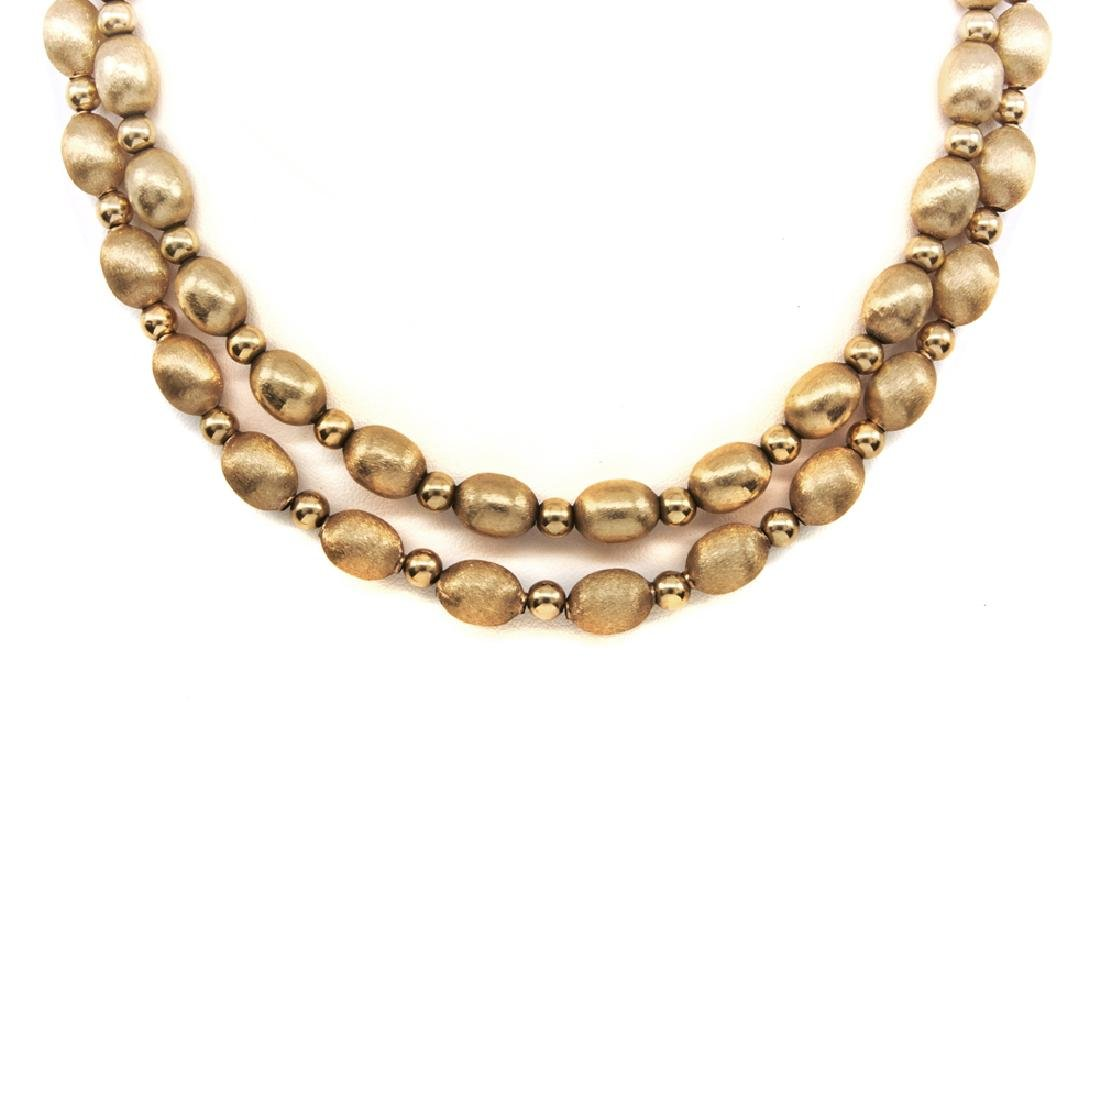 14k Yellow gold bead necklaces